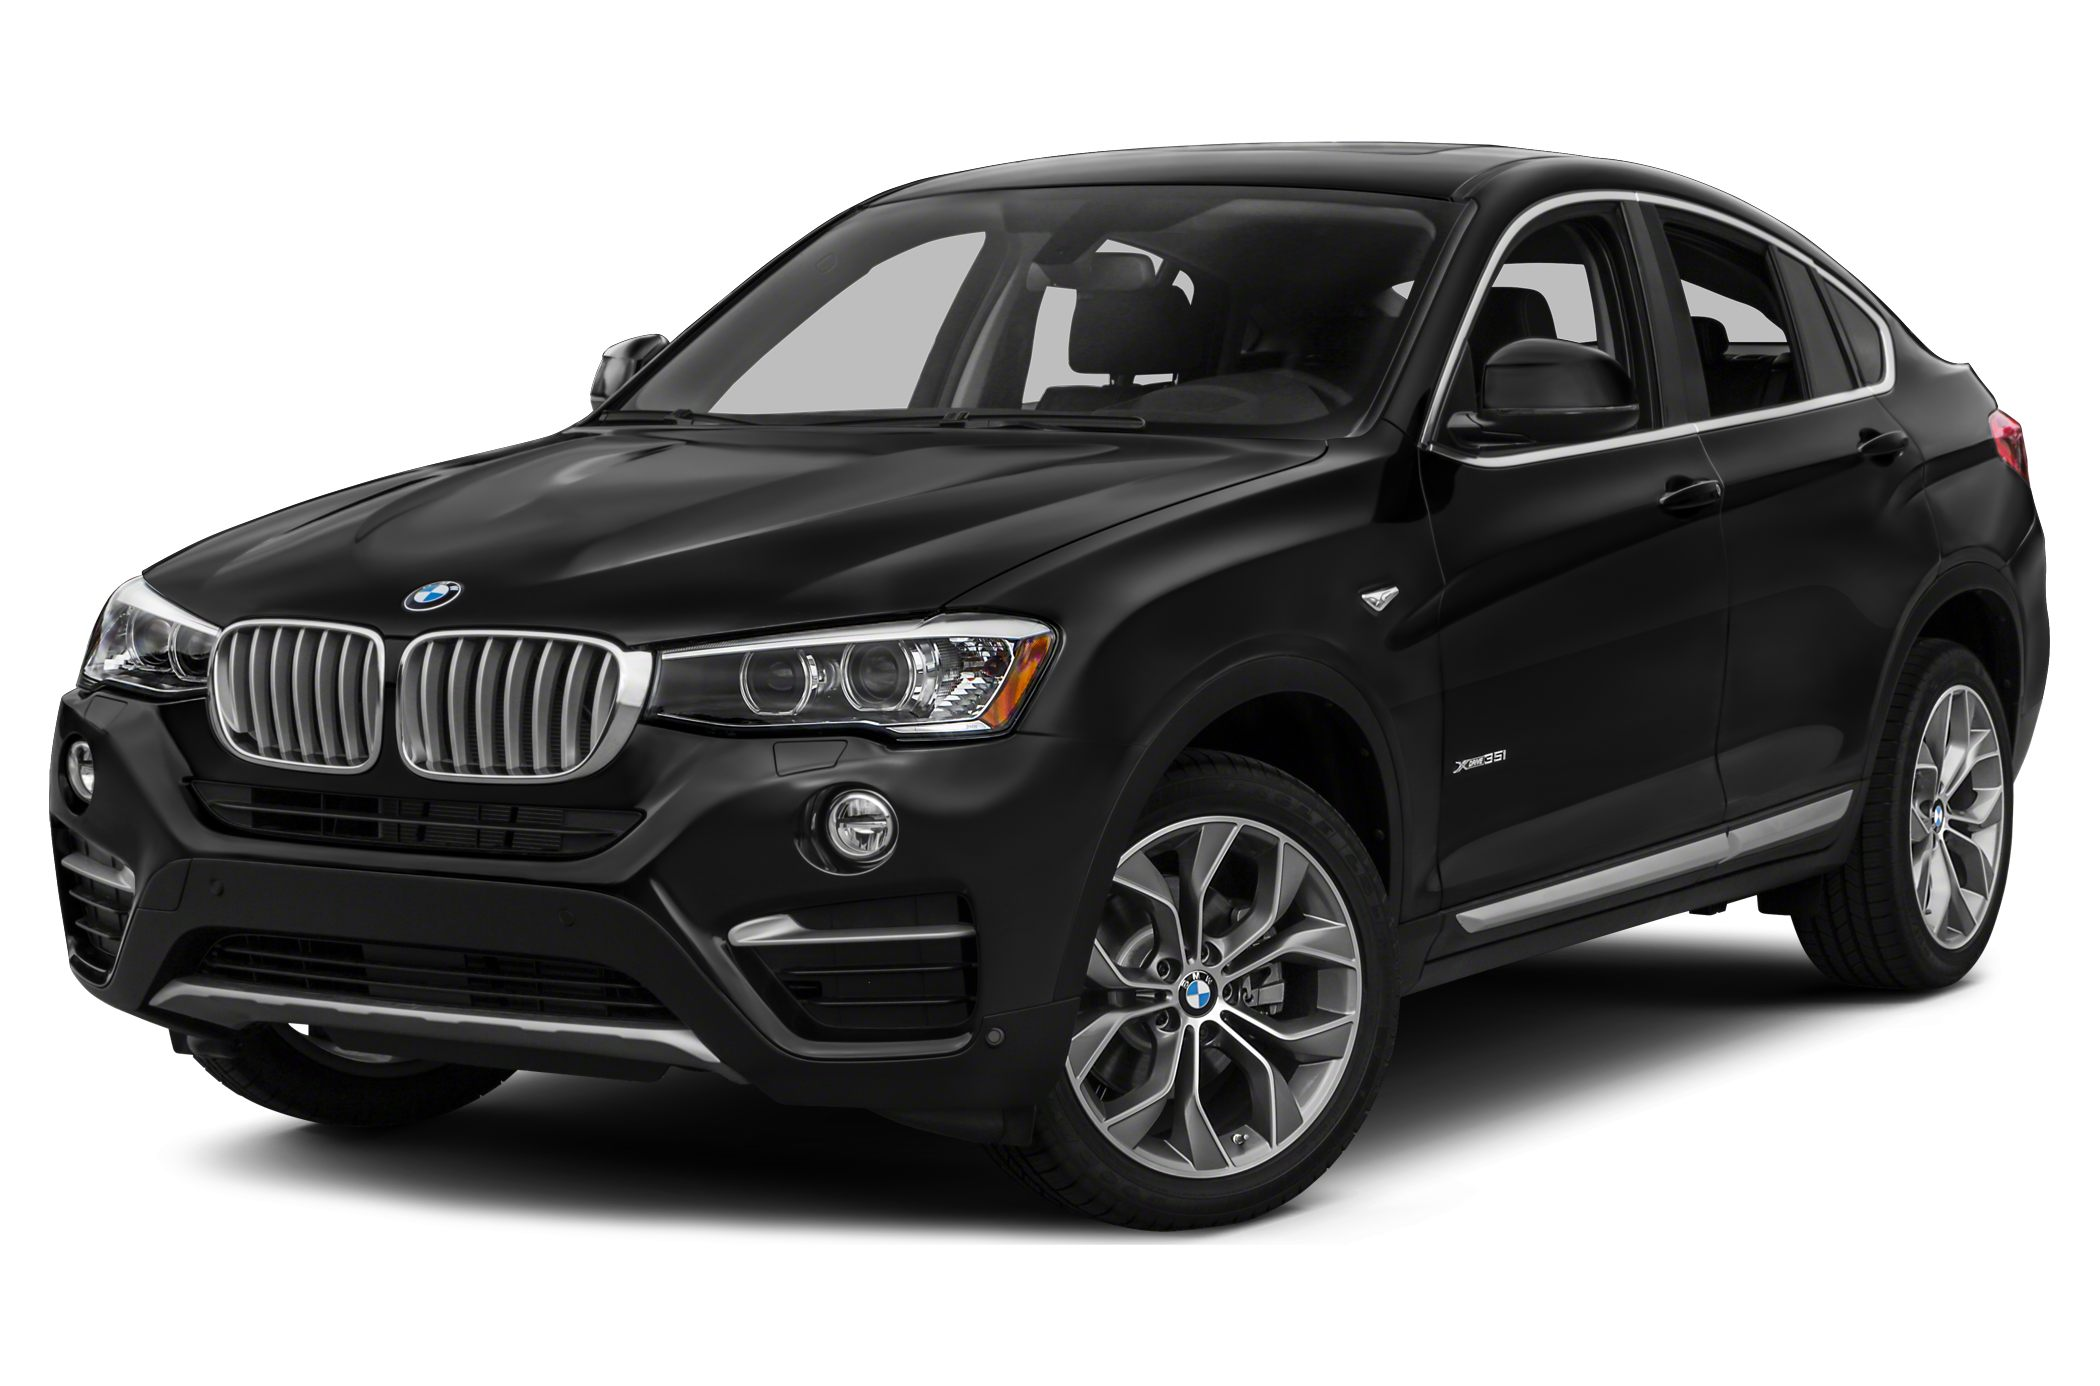 Bmw X4 News Photos And Buying Information Autoblog